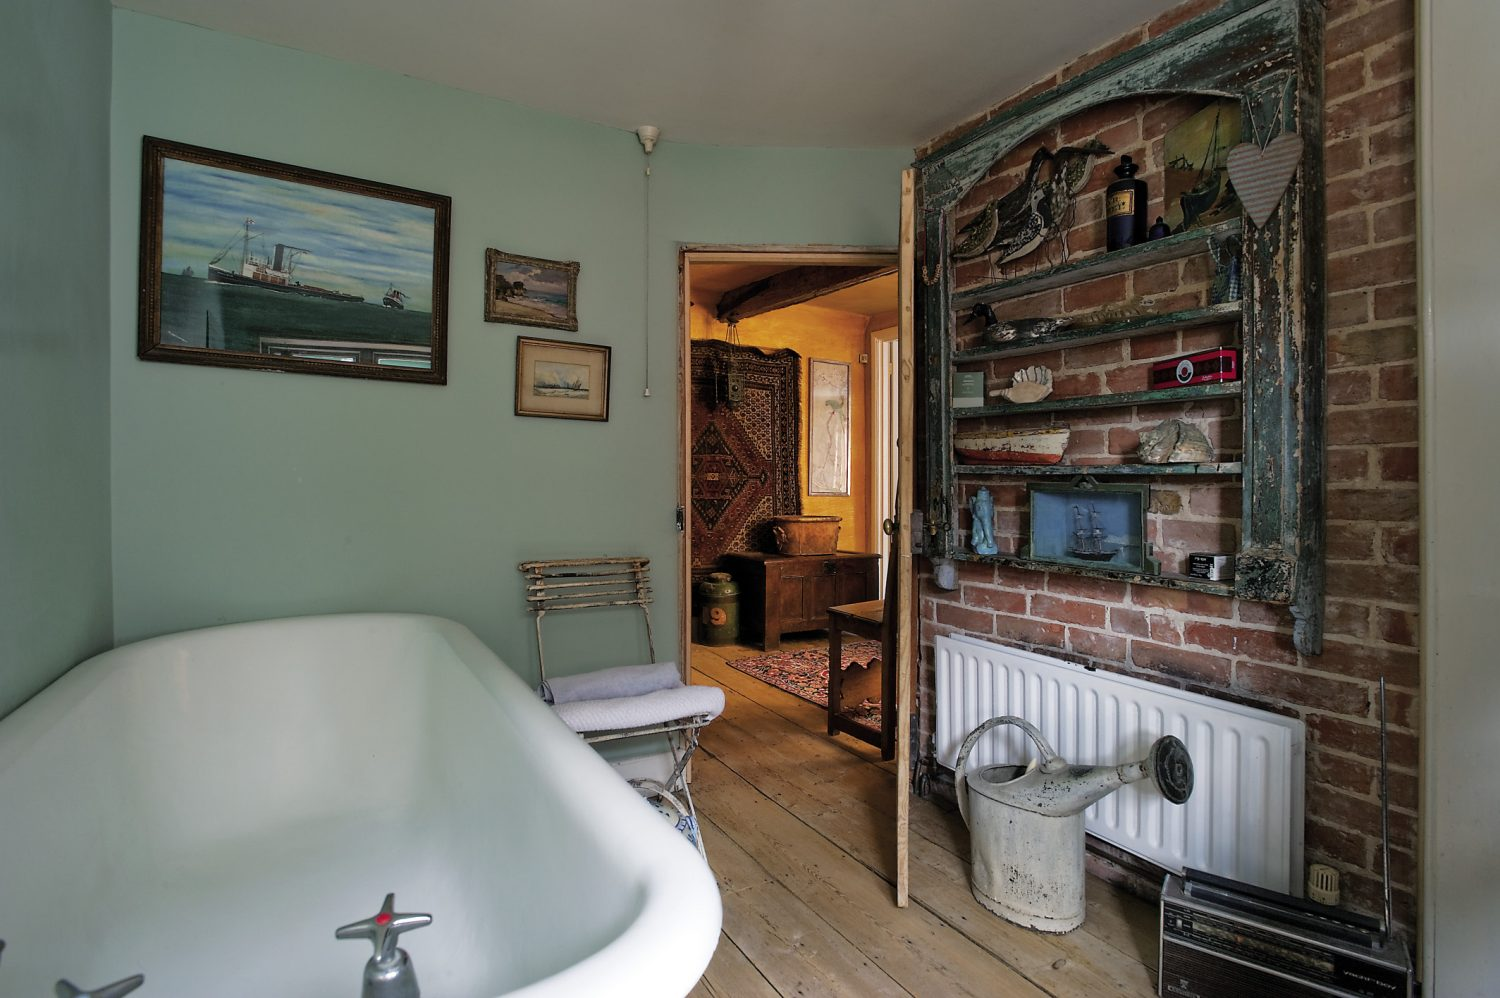 In the sea green painted bathroom a vintage rolltop bath seems fathoms deep and next to it stands a 19th century metal Arras chair, made in the town of the same name in northern France